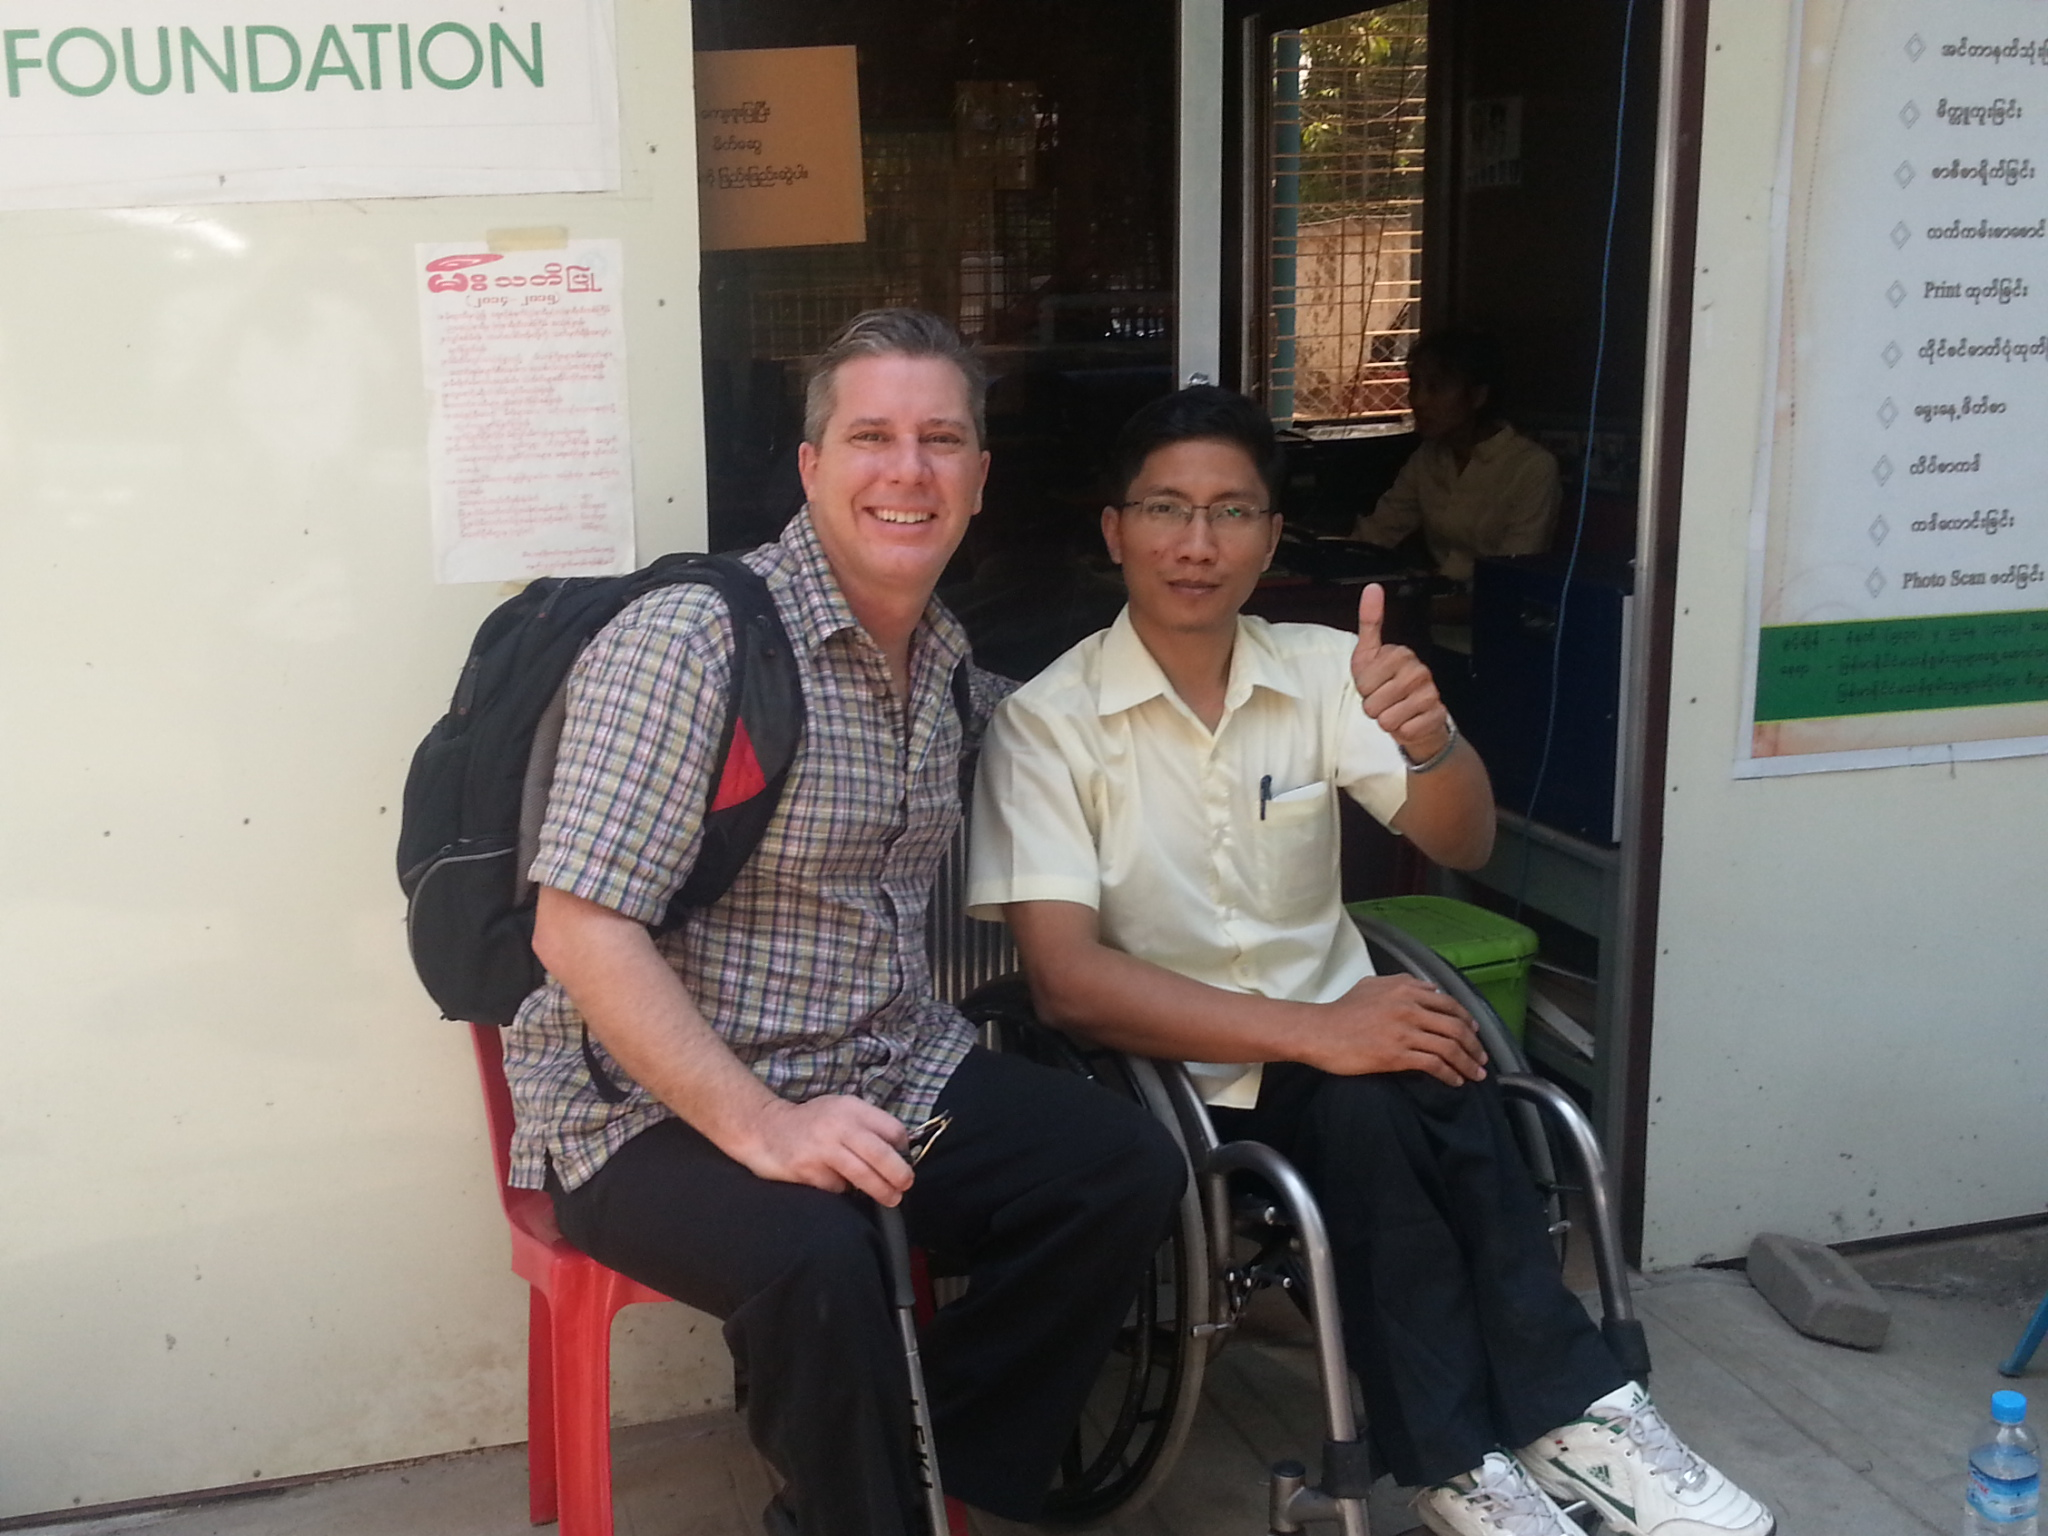 David Morrissey with Nay Lin Soe of Myanmar Independent Living Initiative